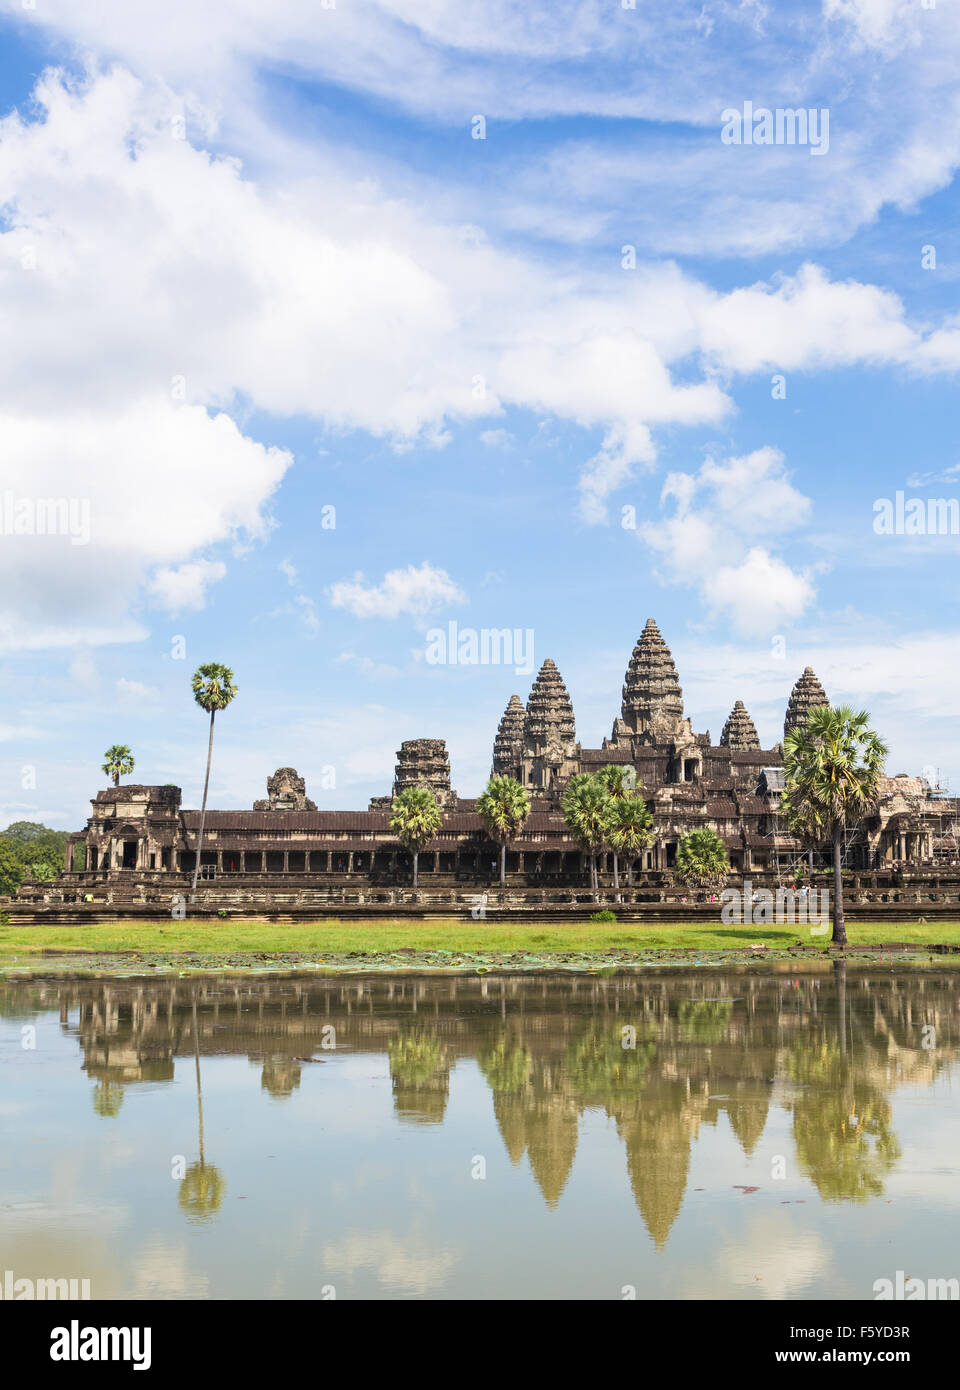 Angkor Wat is part of a stunning complex of temples and other monument near Siem Reap in Cambodia. - Stock Image